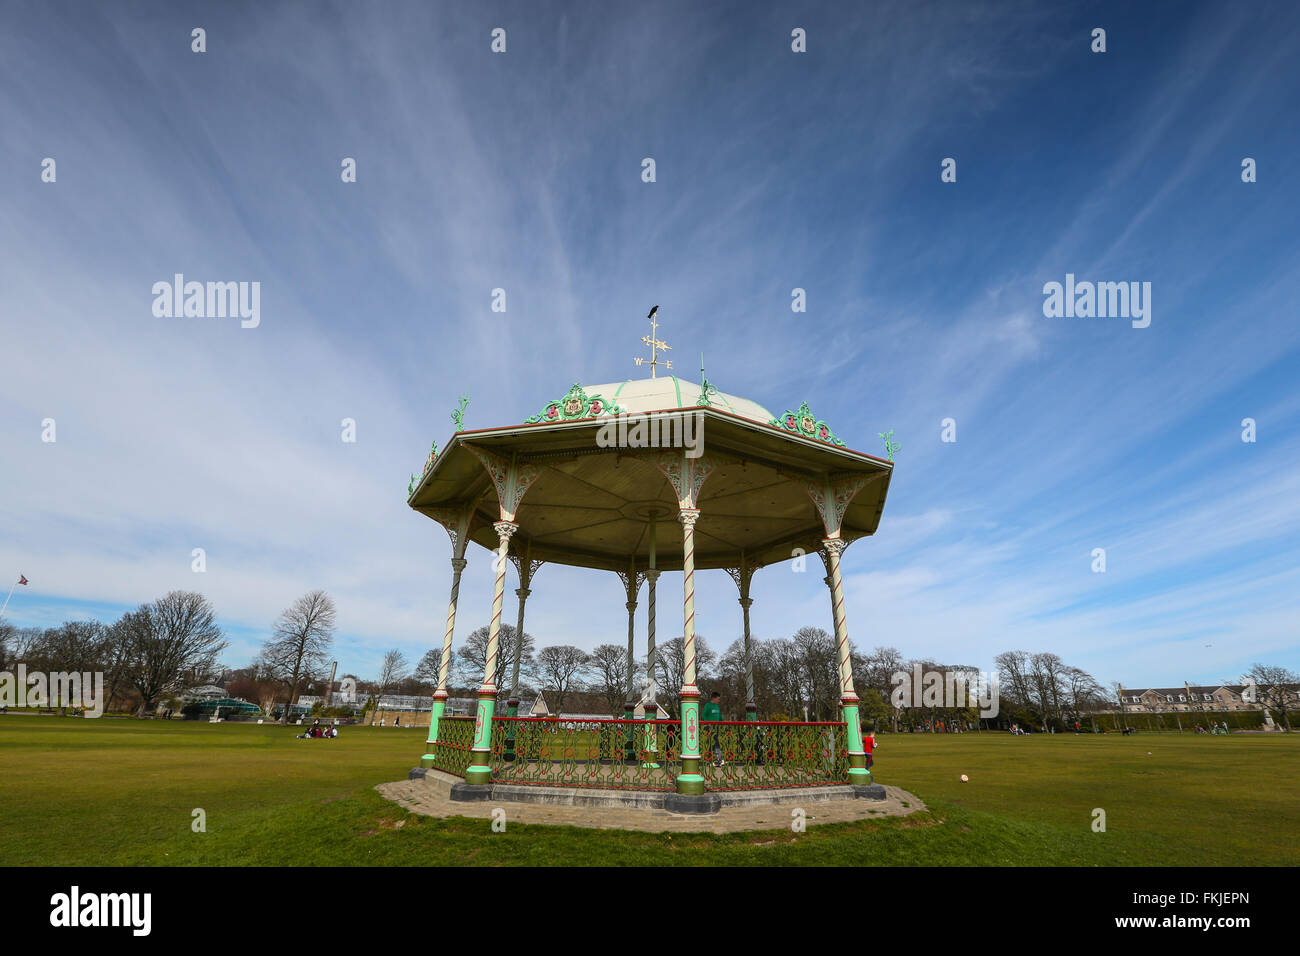 The traditional bandstand within Duthie Park in the city of Aberdeen, Scotland, UK - Stock Image